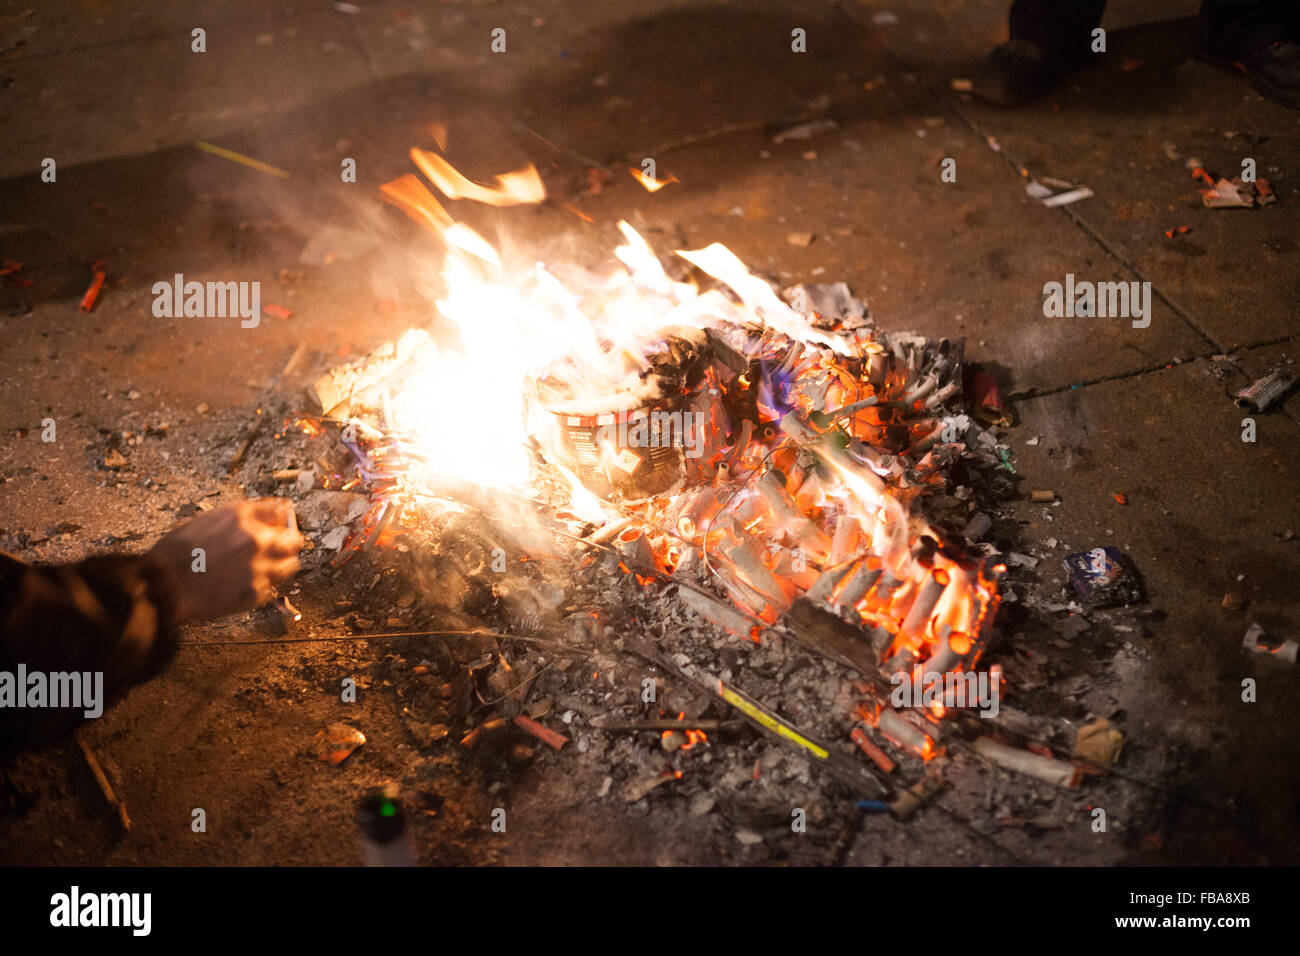 Homeless man feeds a fire. Fire built out of spent fireworks by homeless to keep warm, Berlin New Years Eve 2013 Stock Photo